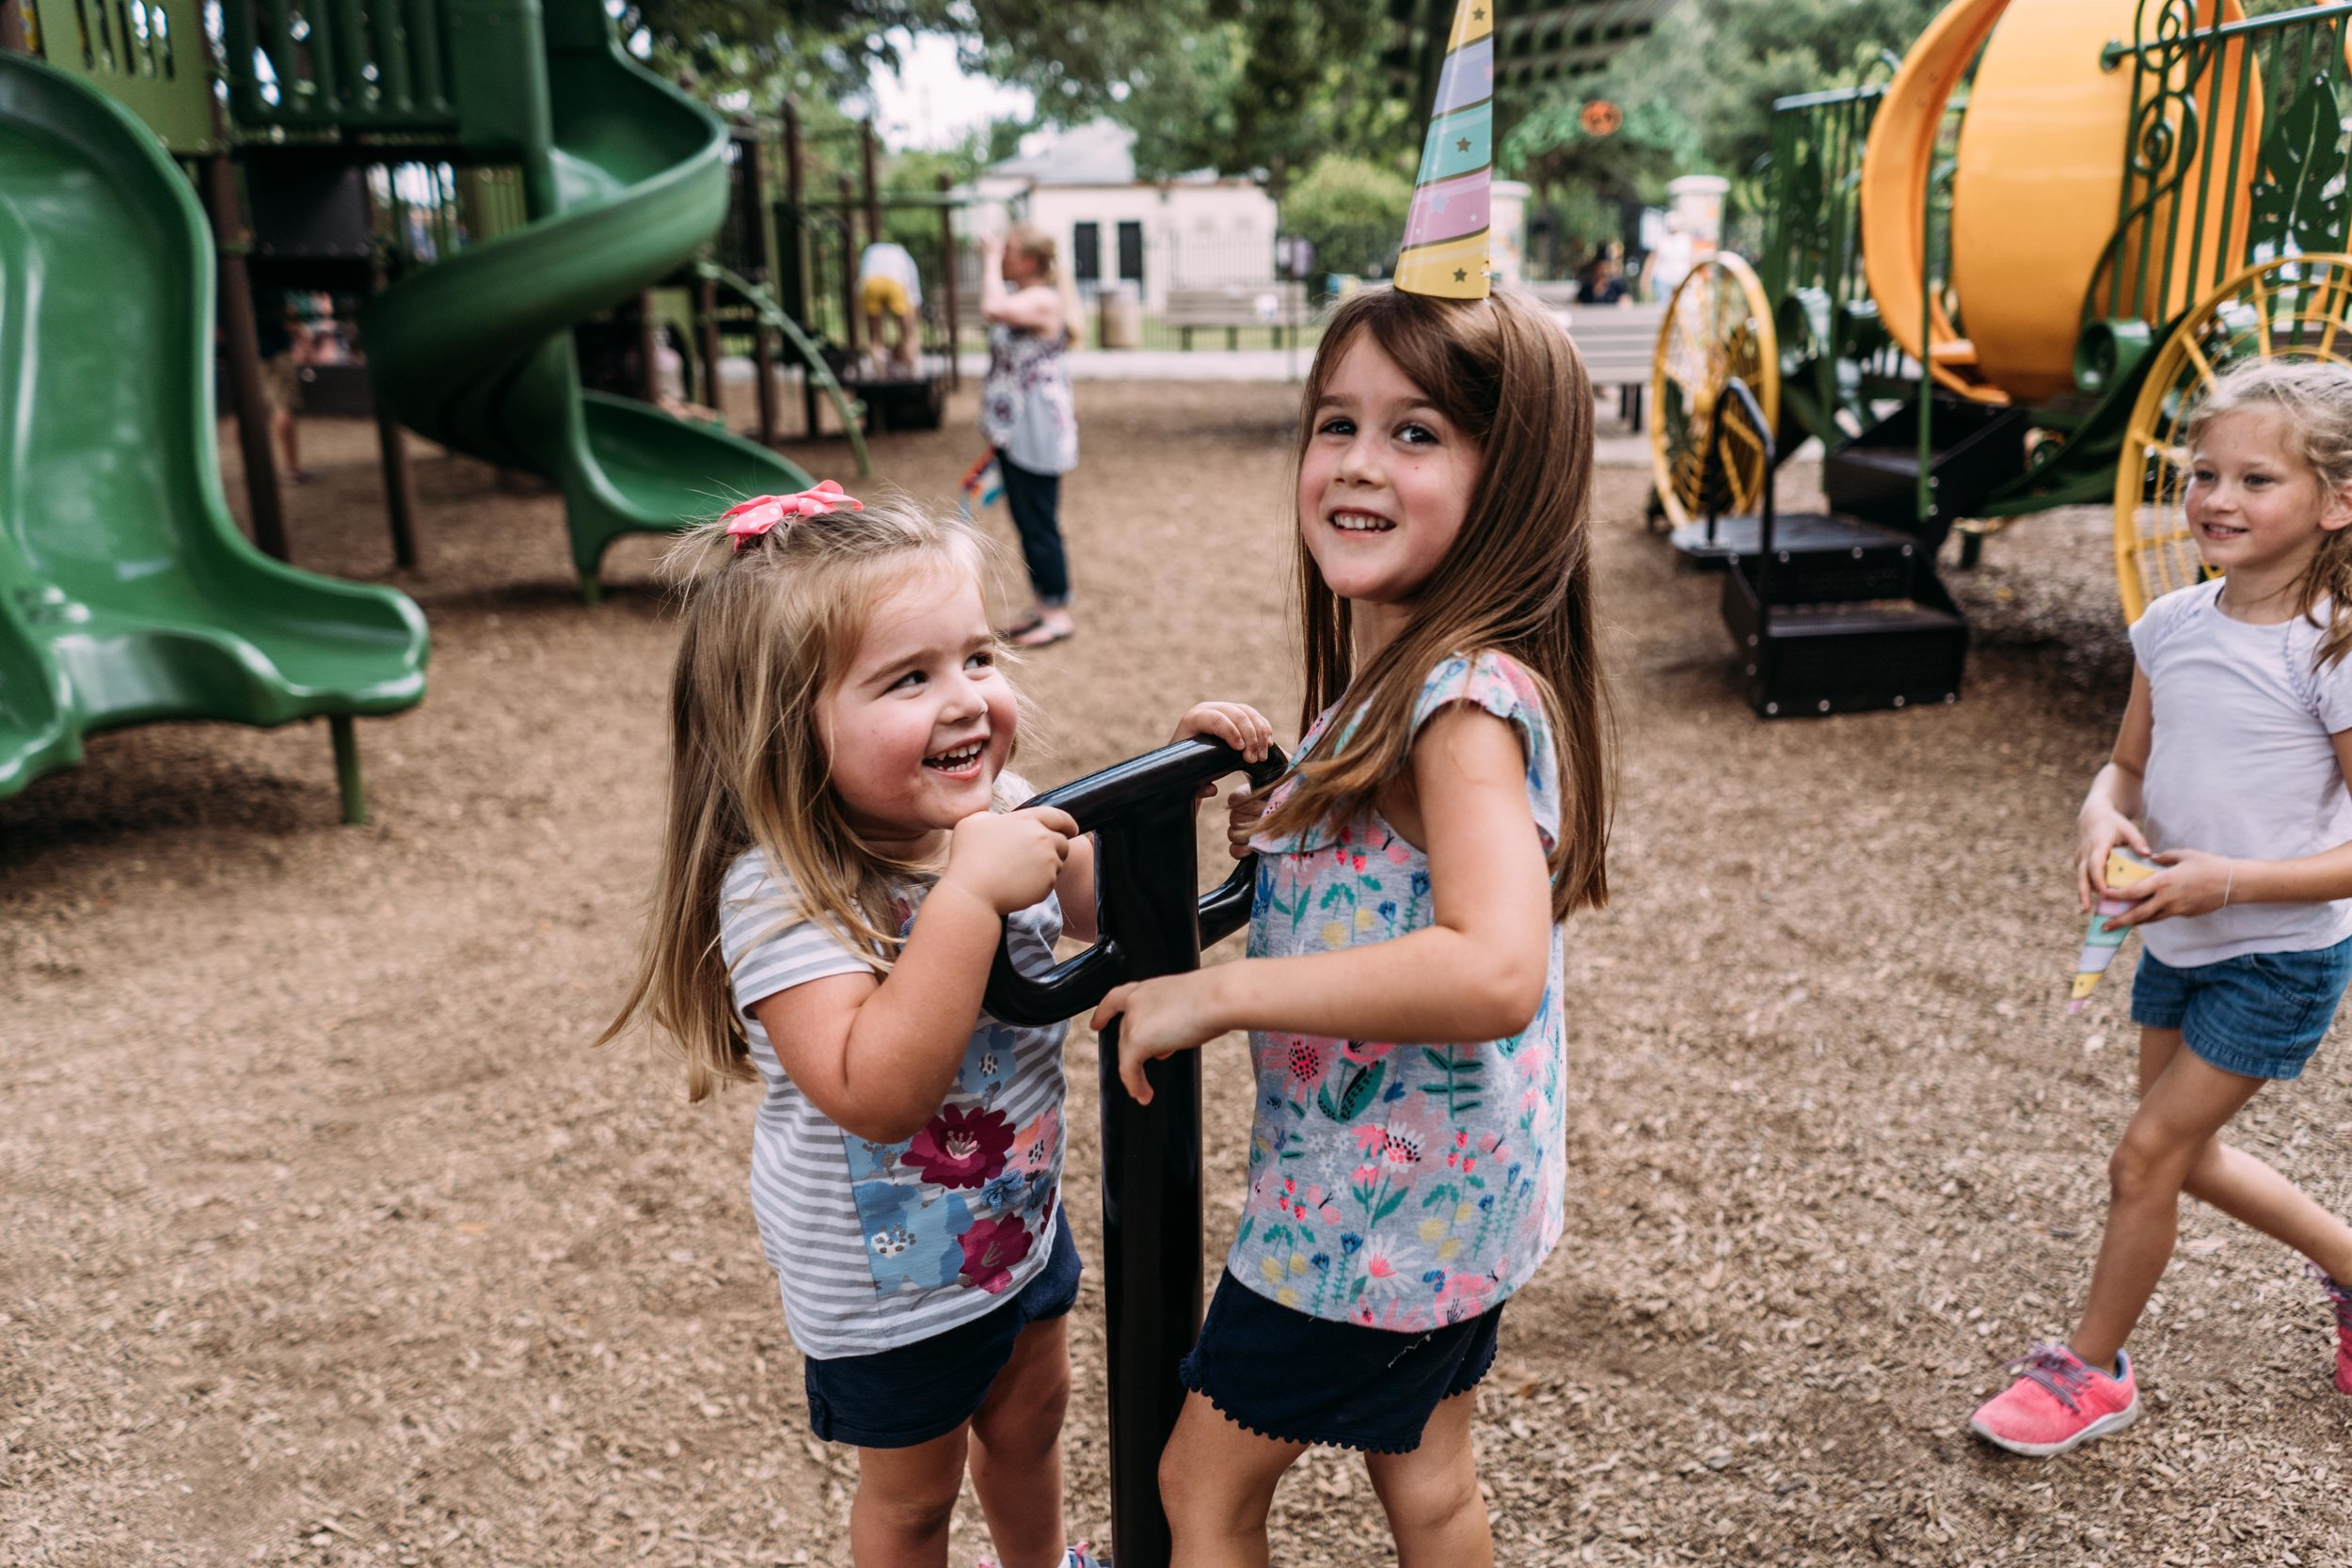 birthday party at the park-45.jpg